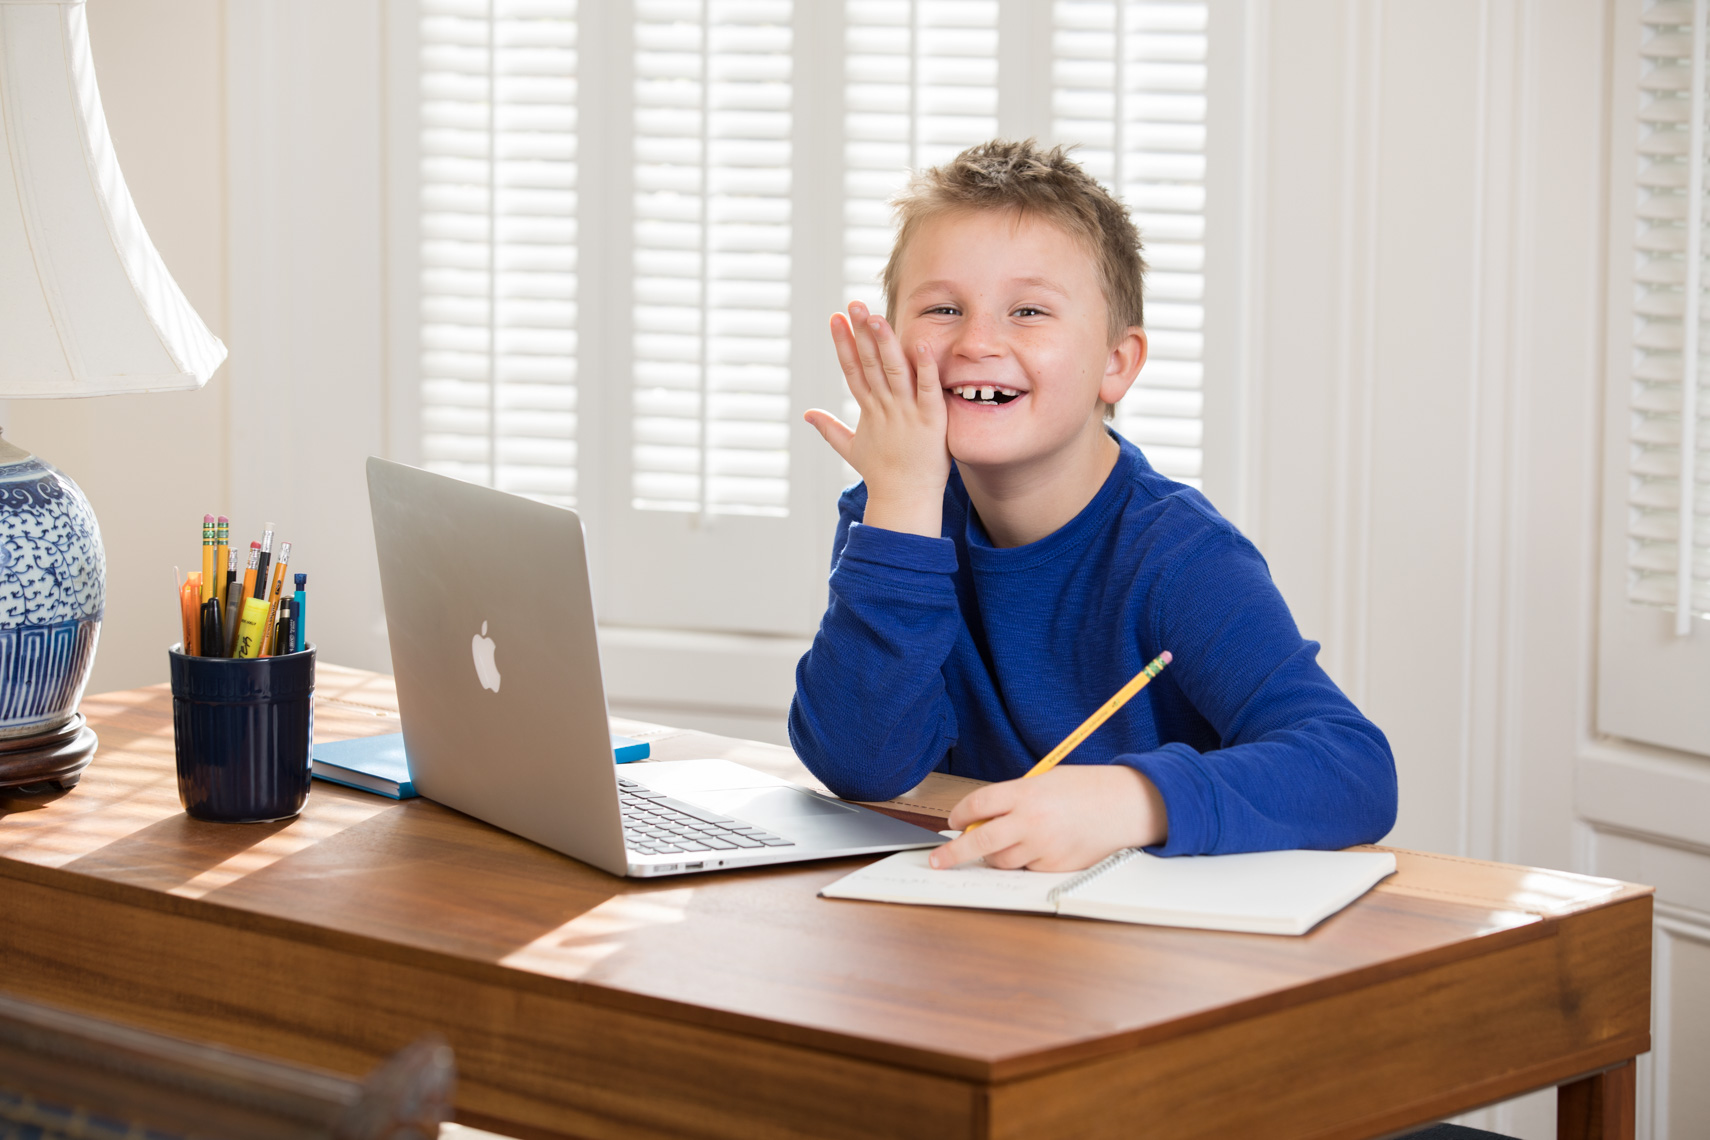 Portrait of a young boy doing homework at a deskwith a laptop